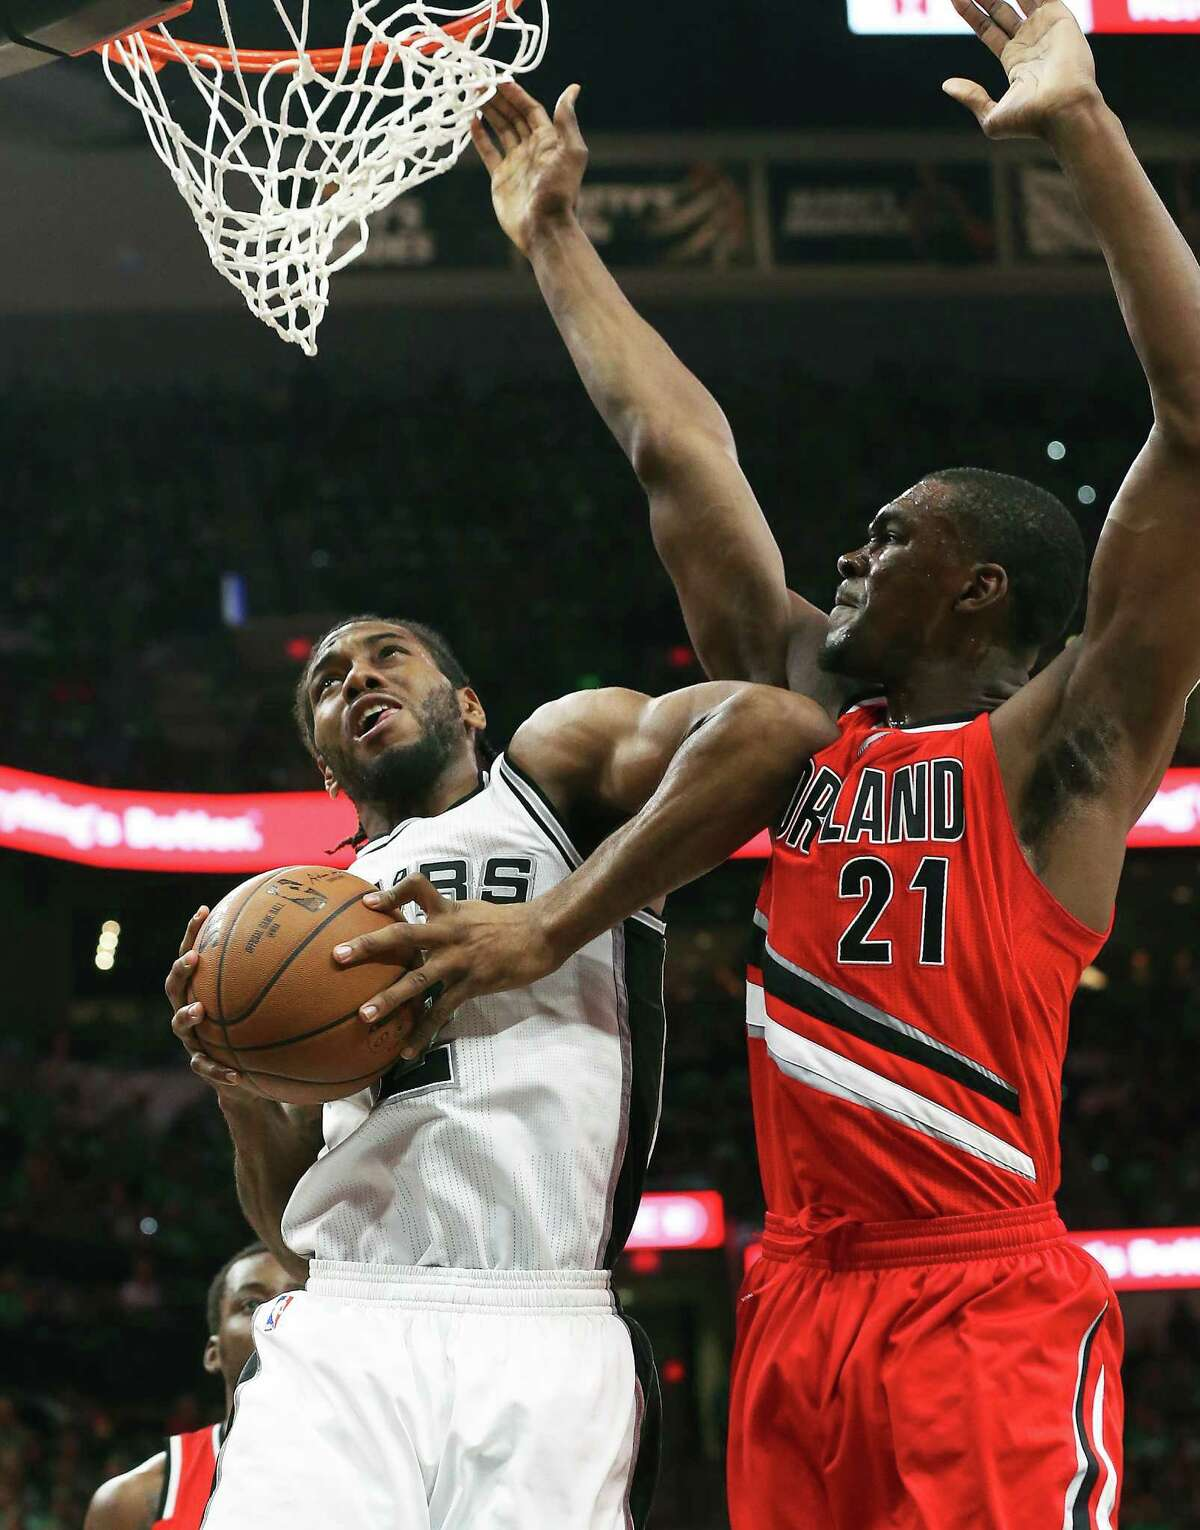 Kawhi Leonard uses some leverage on Noah Vonleh to score in the first half as the Spurs host the Blazers at the AT&T Center on March 17, 2016.